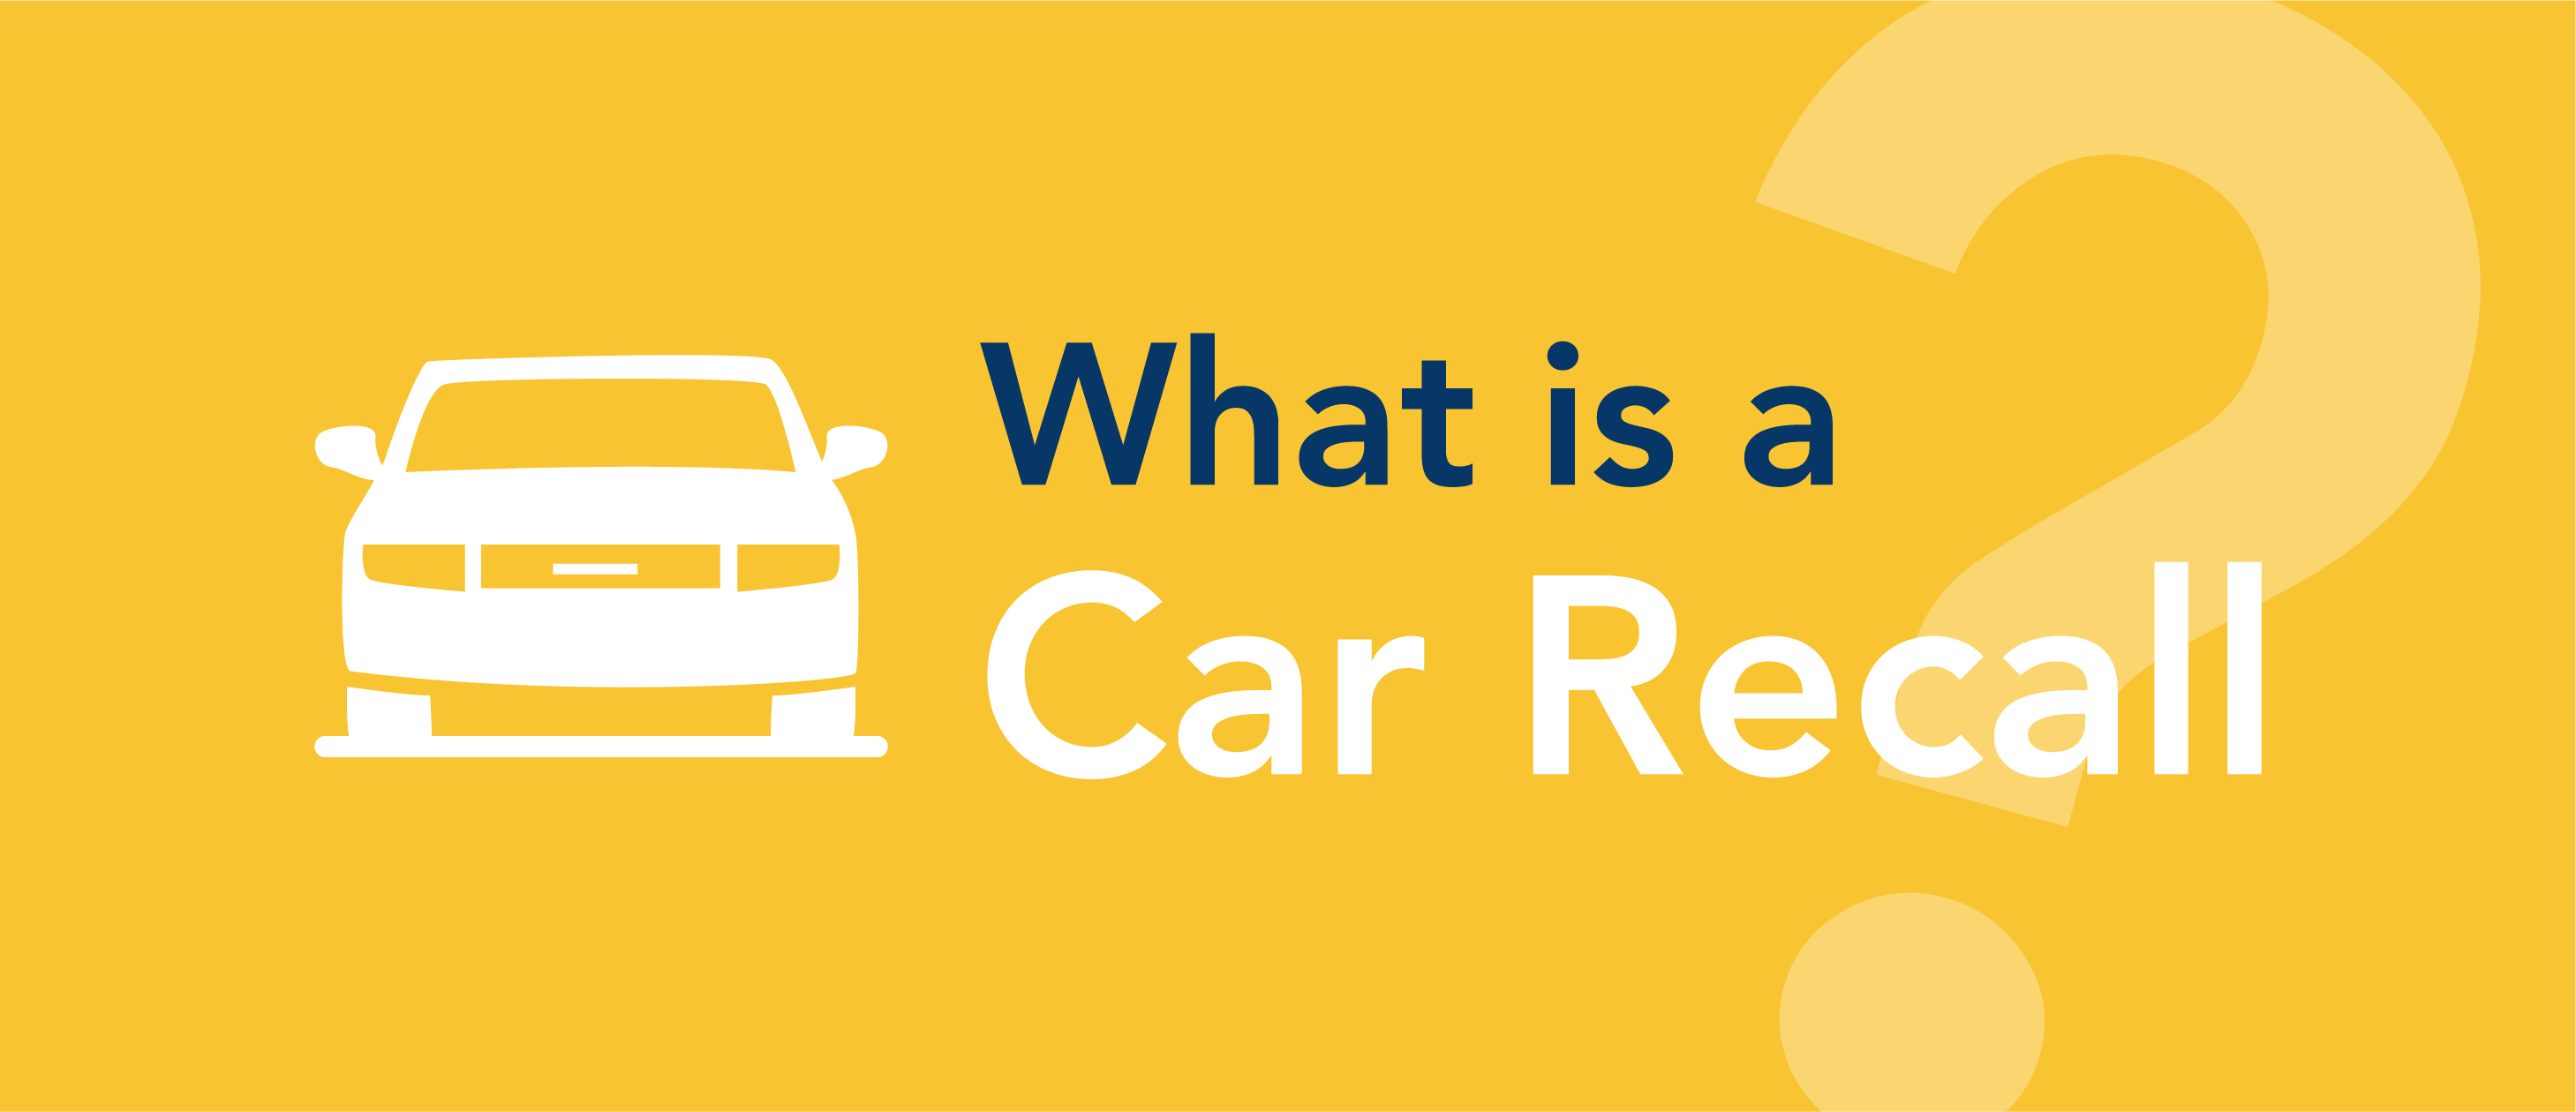 what is a car recall